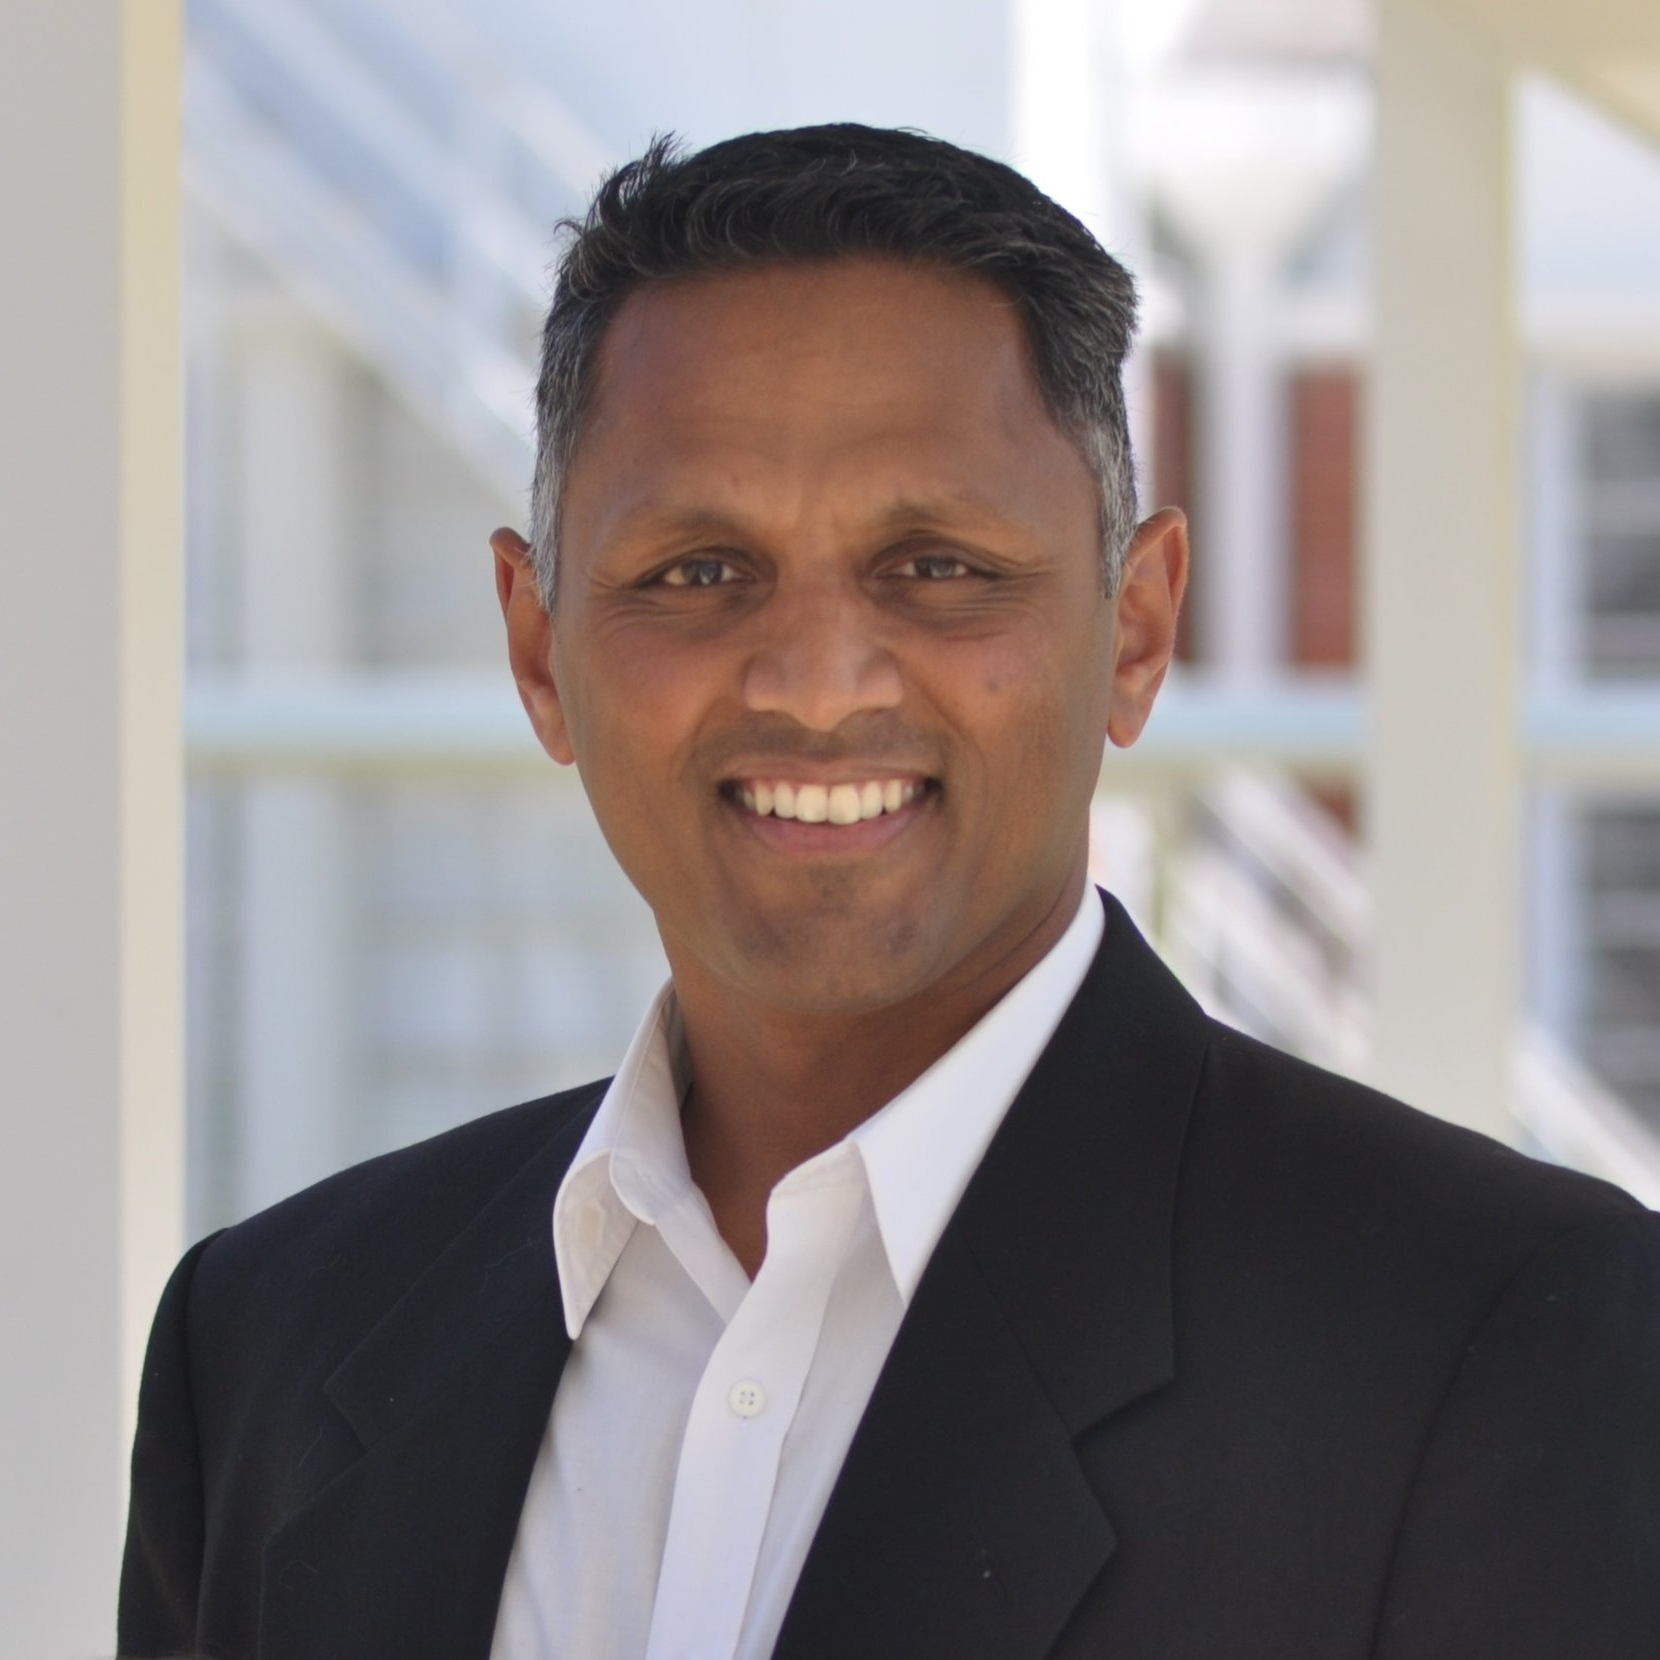 DAVE PRAKASH - San FranciscoCEO Parallax Enterprises LLC. Physician and former US Air Force test pilot and flight surgeon. Tillman Scholar, Johns Hopkins & Stanford alum.